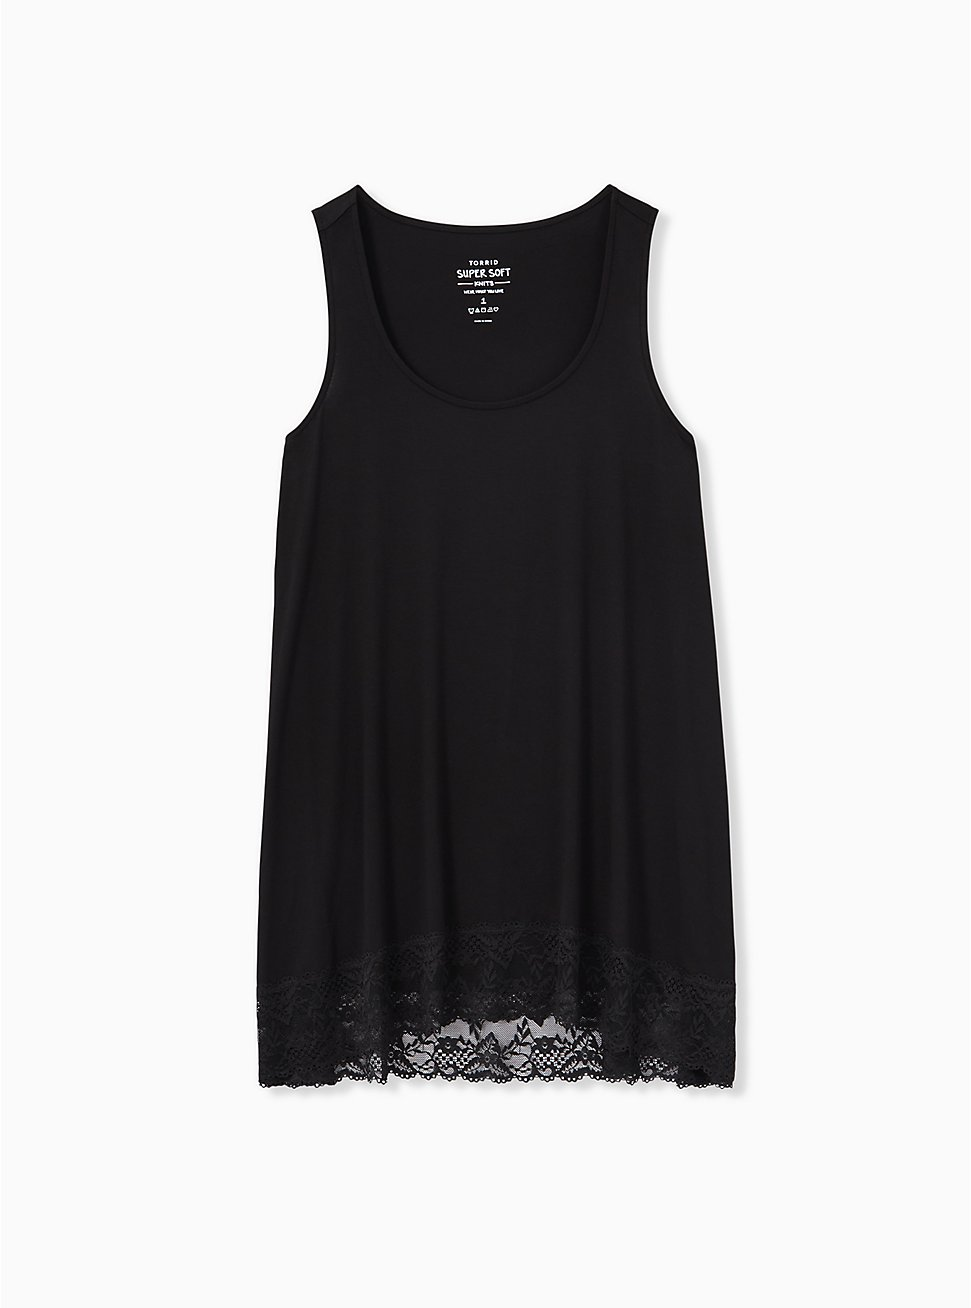 Super Soft Black Lace Trim Tunic Tank, DEEP BLACK, hi-res